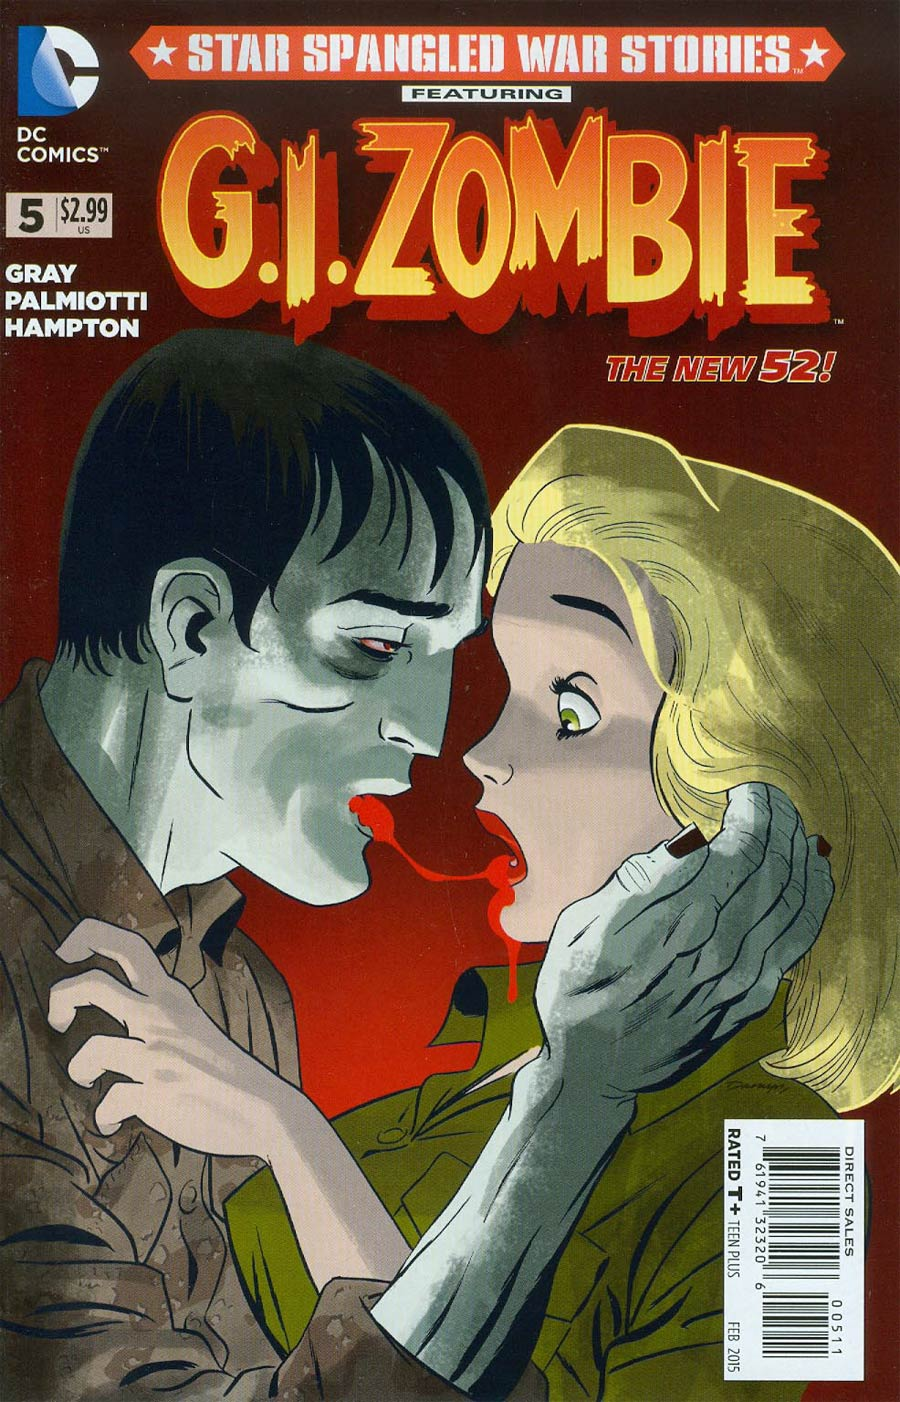 Star-Spangled War Stories Featuring GI Zombie #5